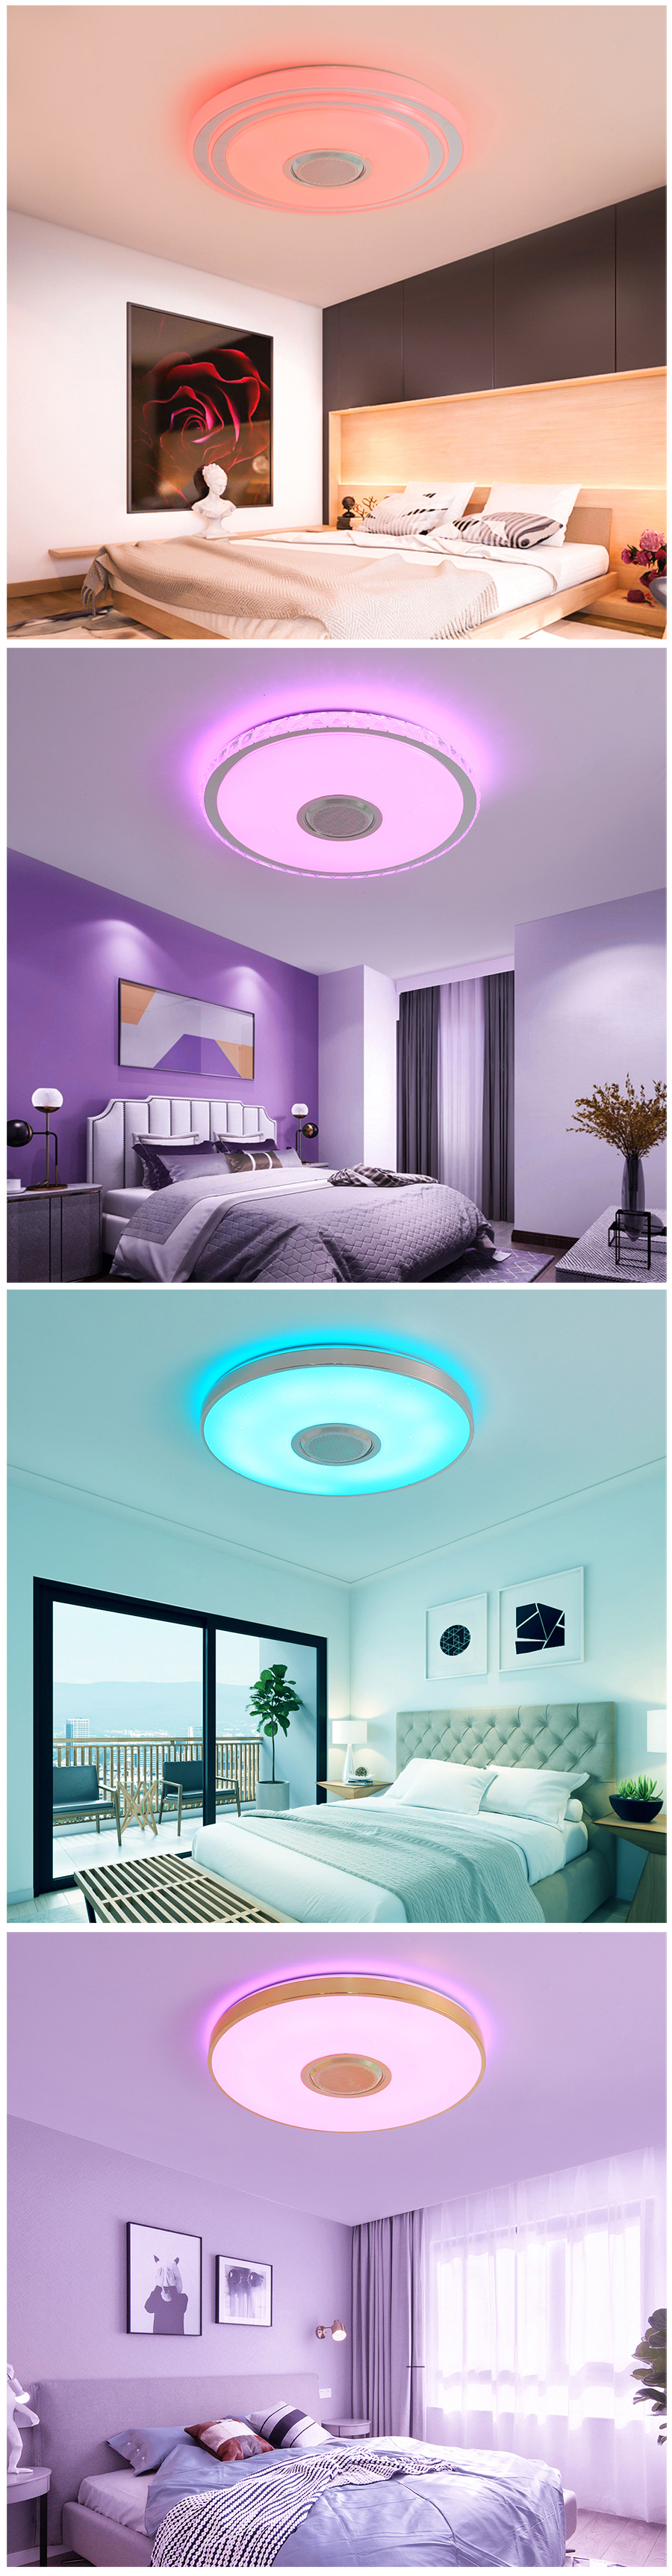 H2456e1cbee3642099a1161daca78ce185 Music LED ceiling Lights RGB APP and Remote control ceiling lamp bedroom 25W 36W 52W living room light lampara de techo